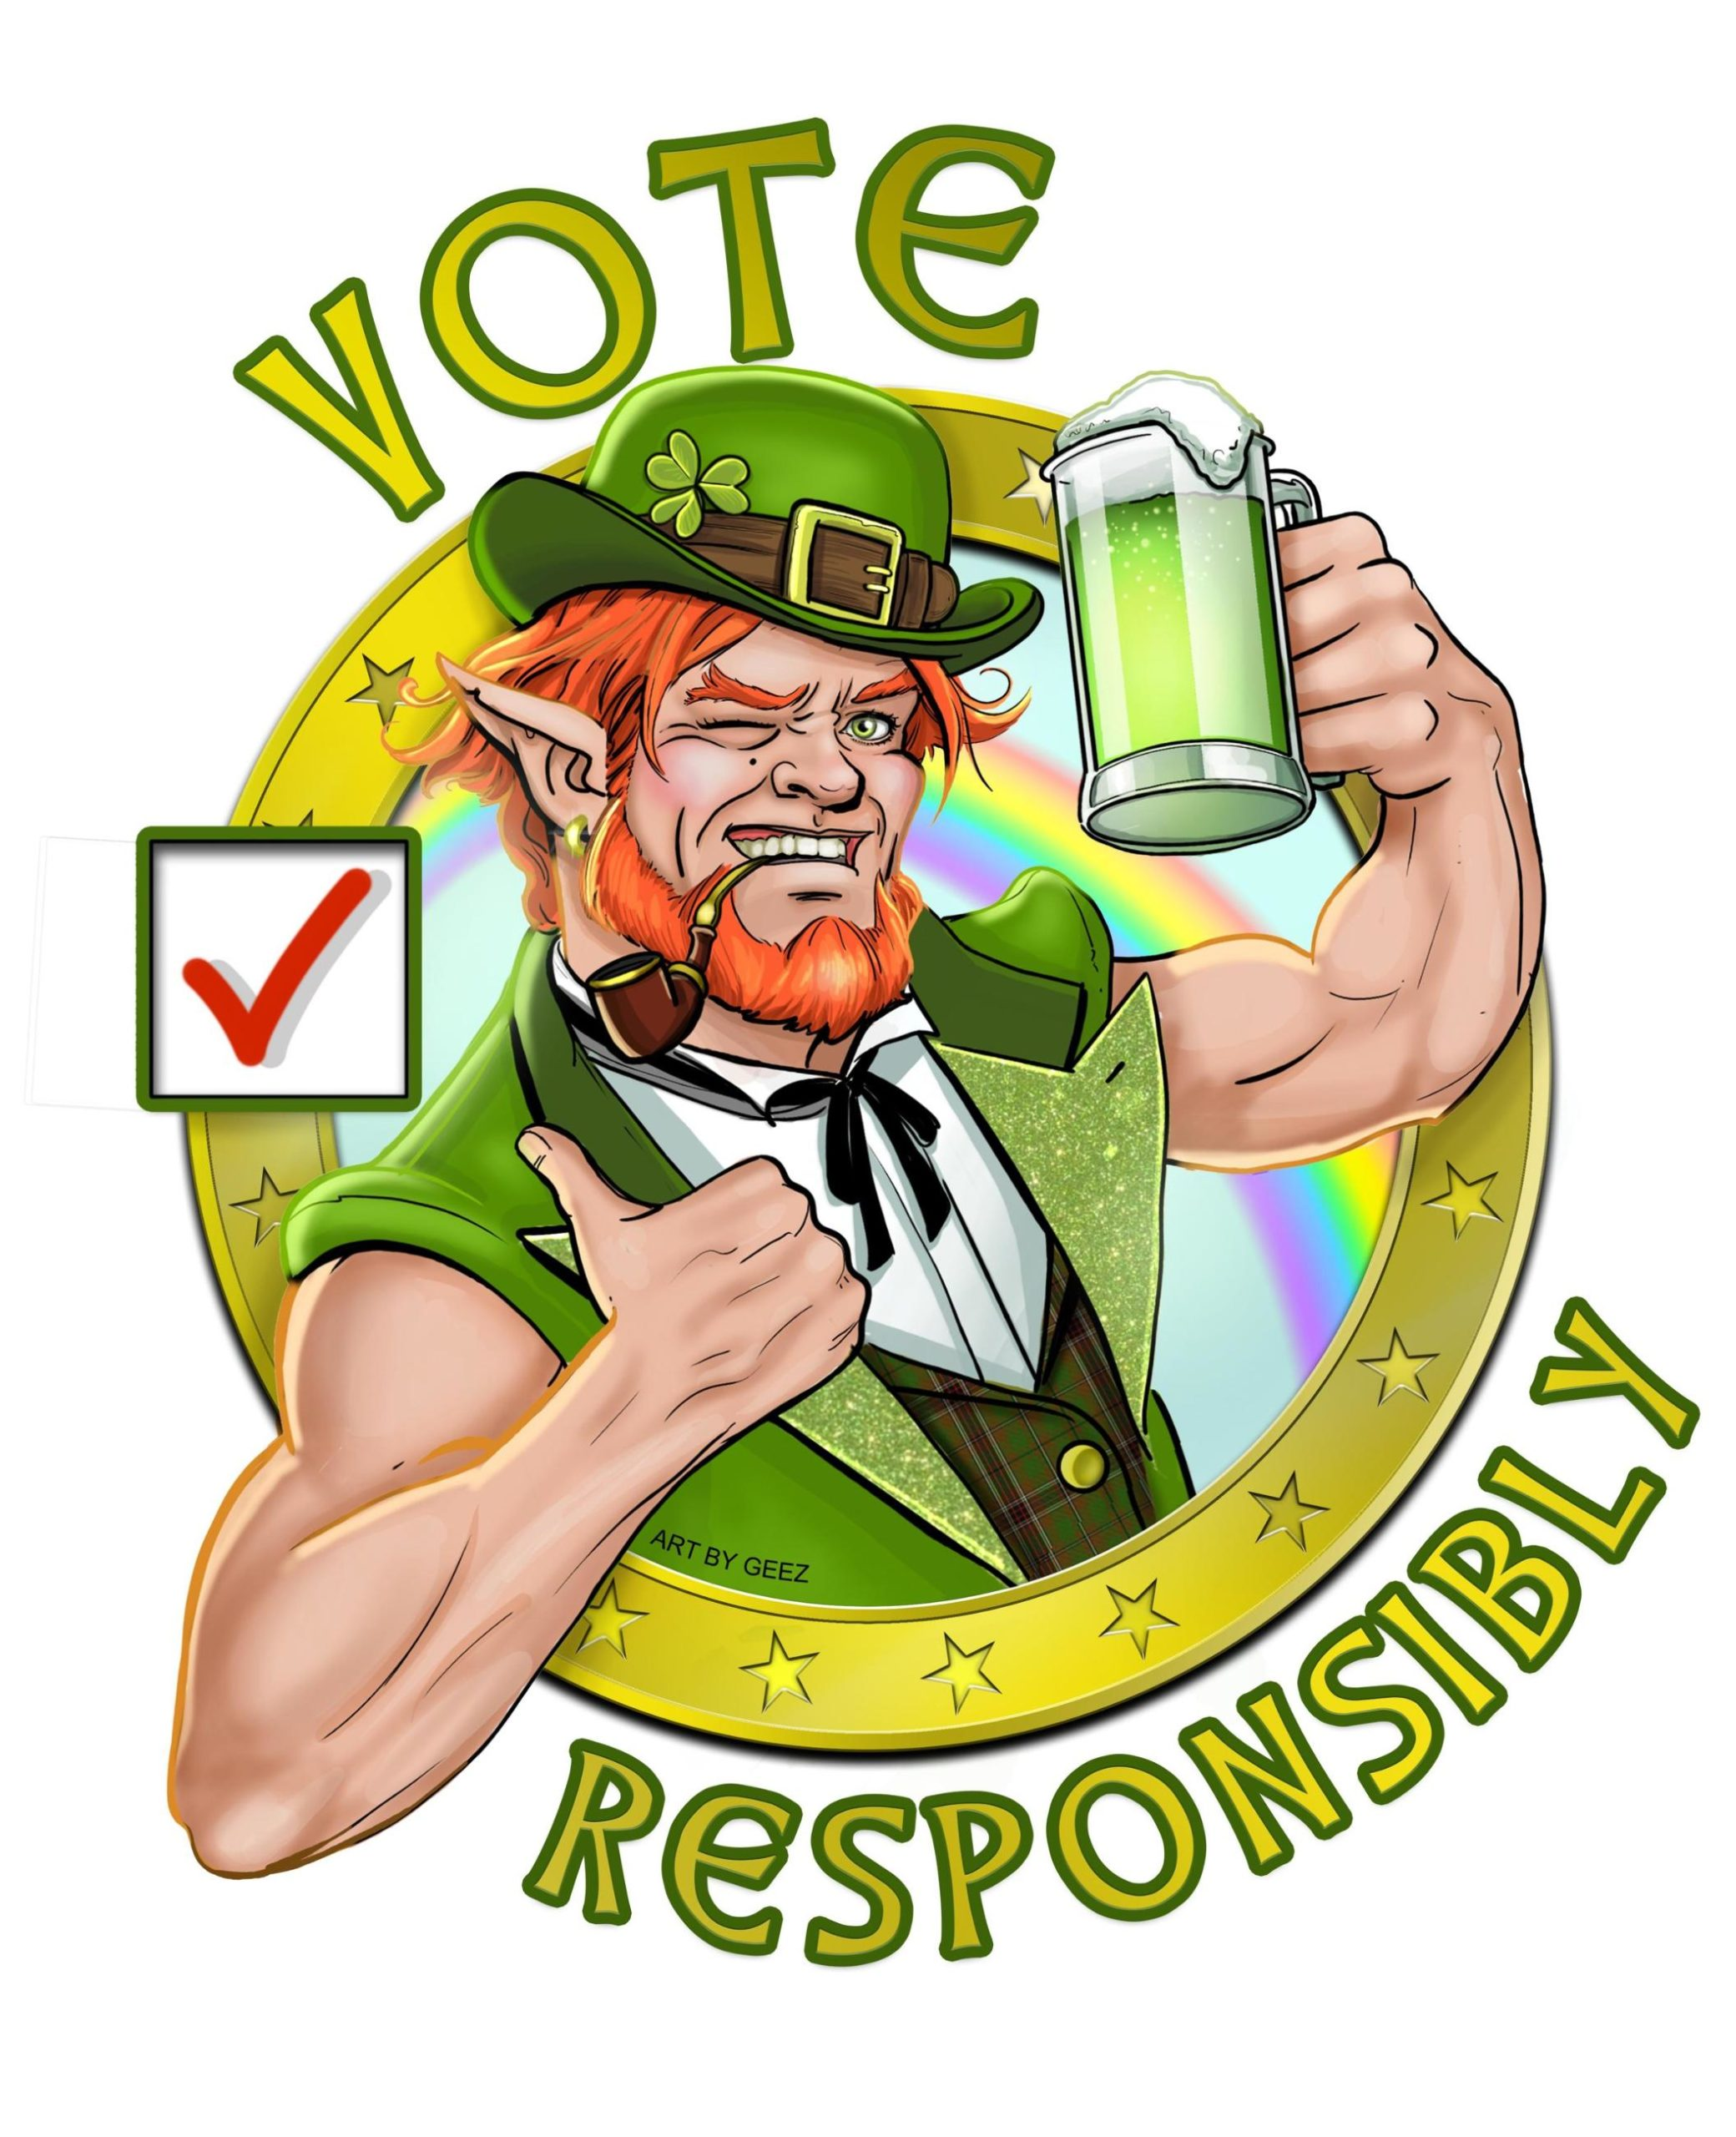 St Patricks Vote Responsibly